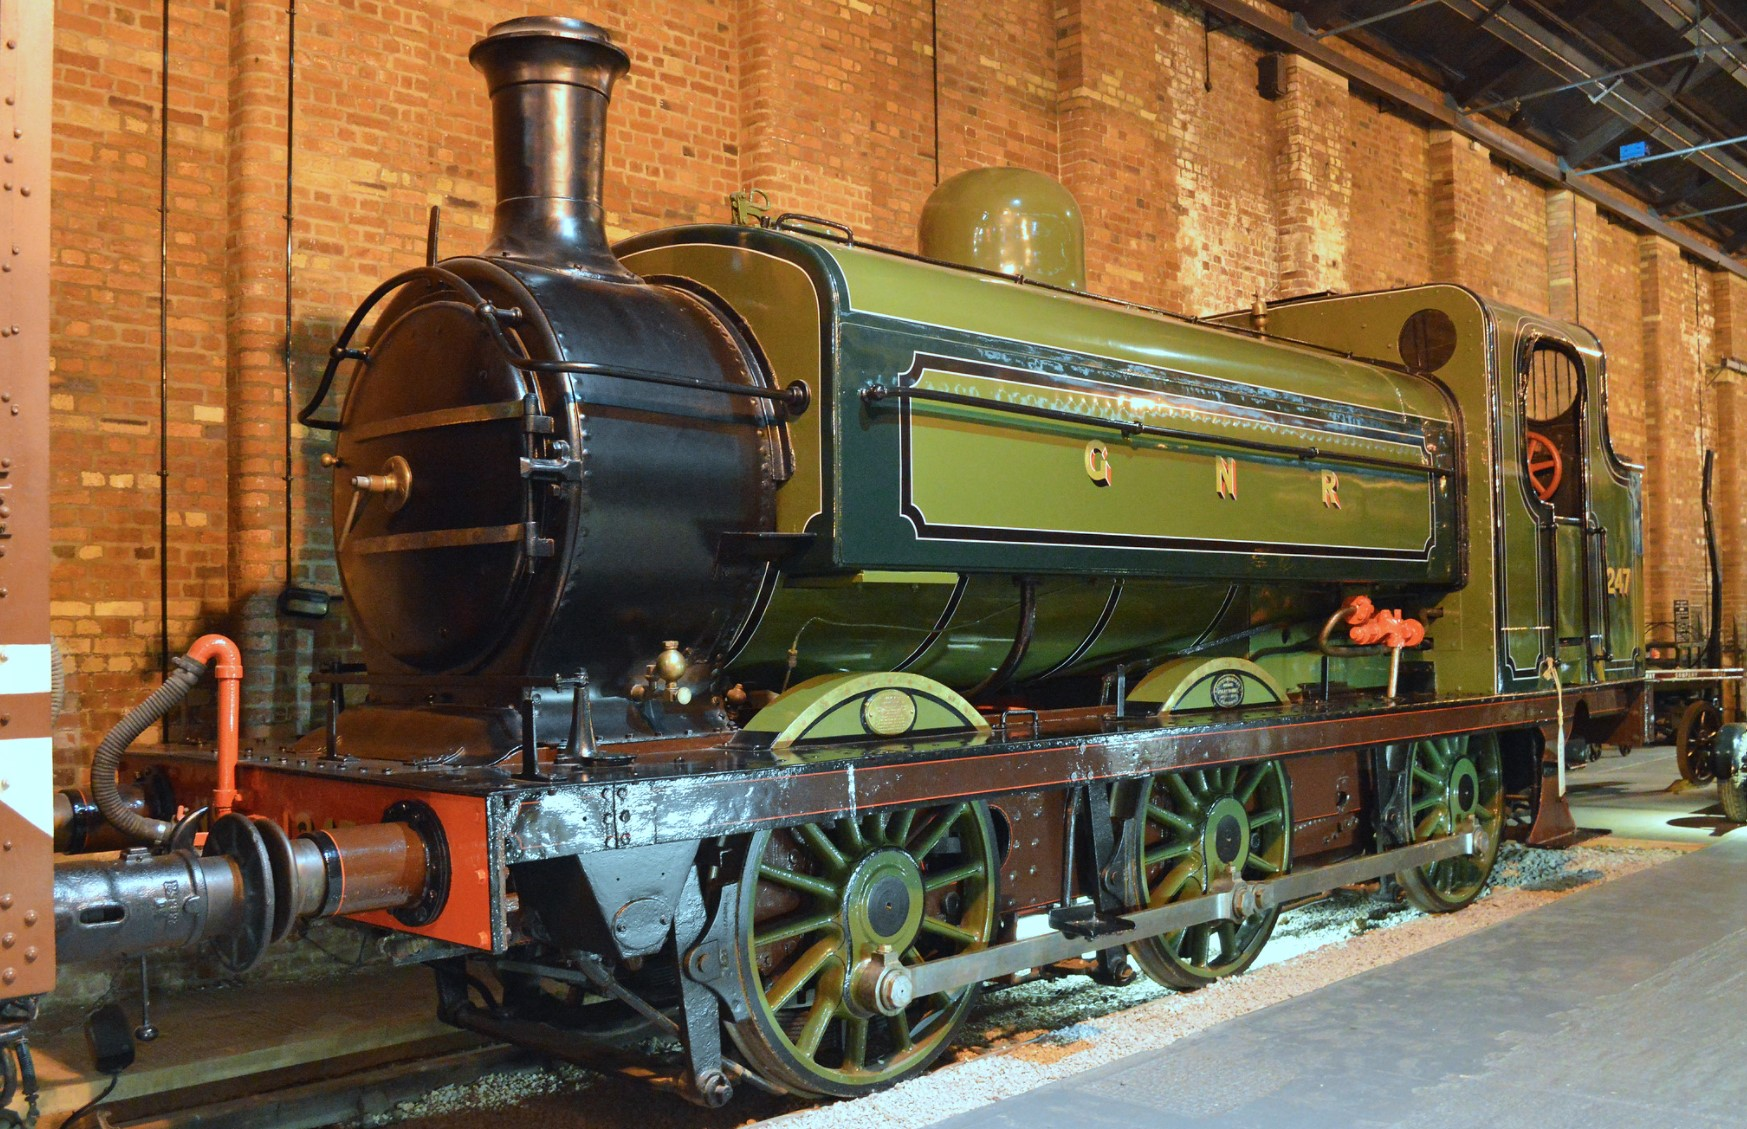 1247 at the National Railway Museum in York in January 2016. ©Alan Wilson